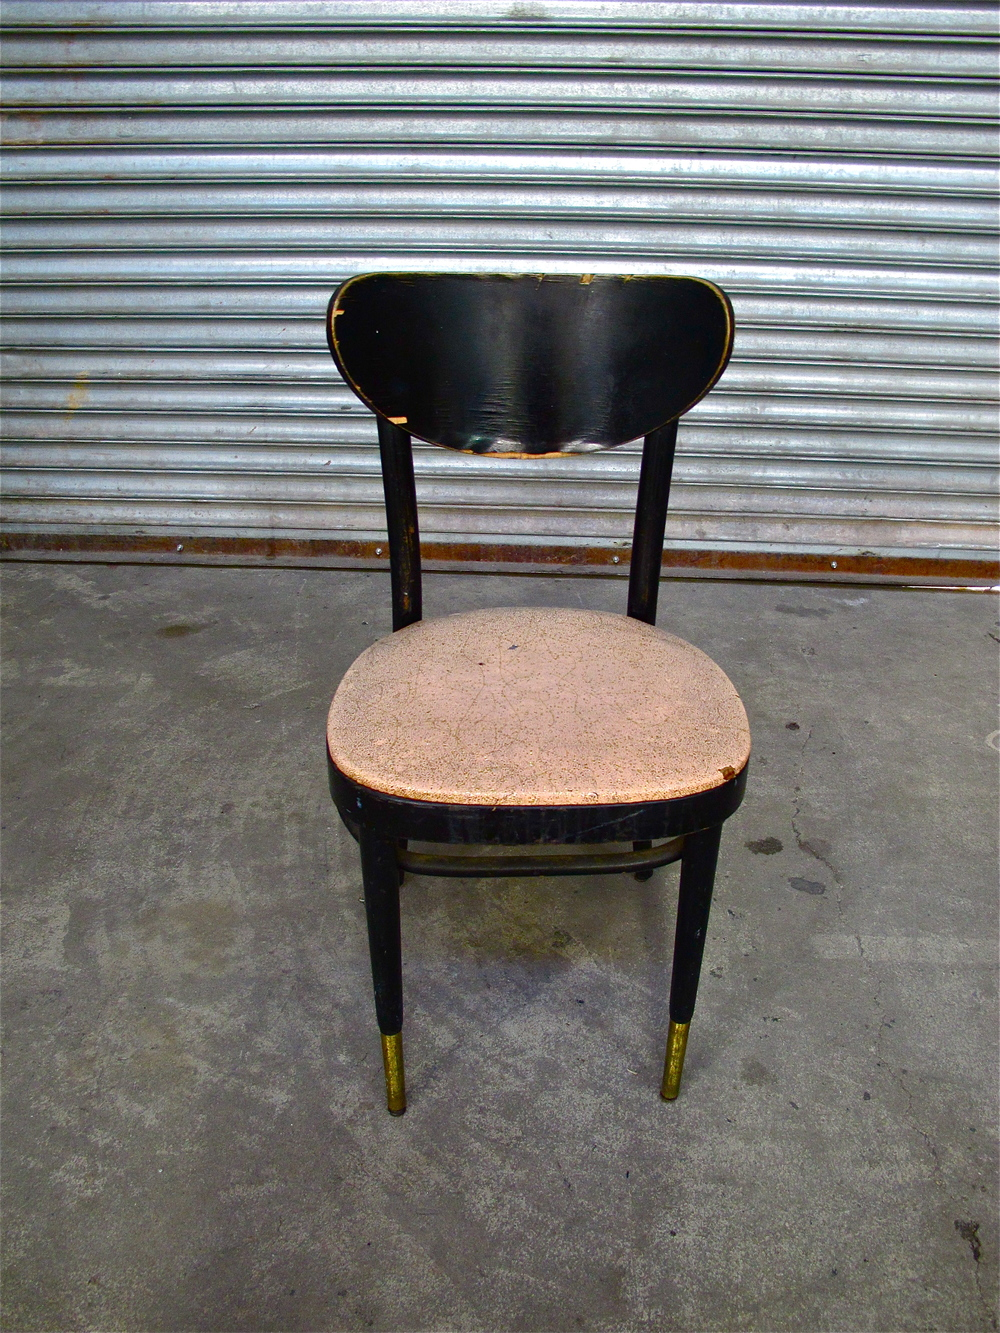 Pink-Sparkle Black Wood Cafe Chair $35